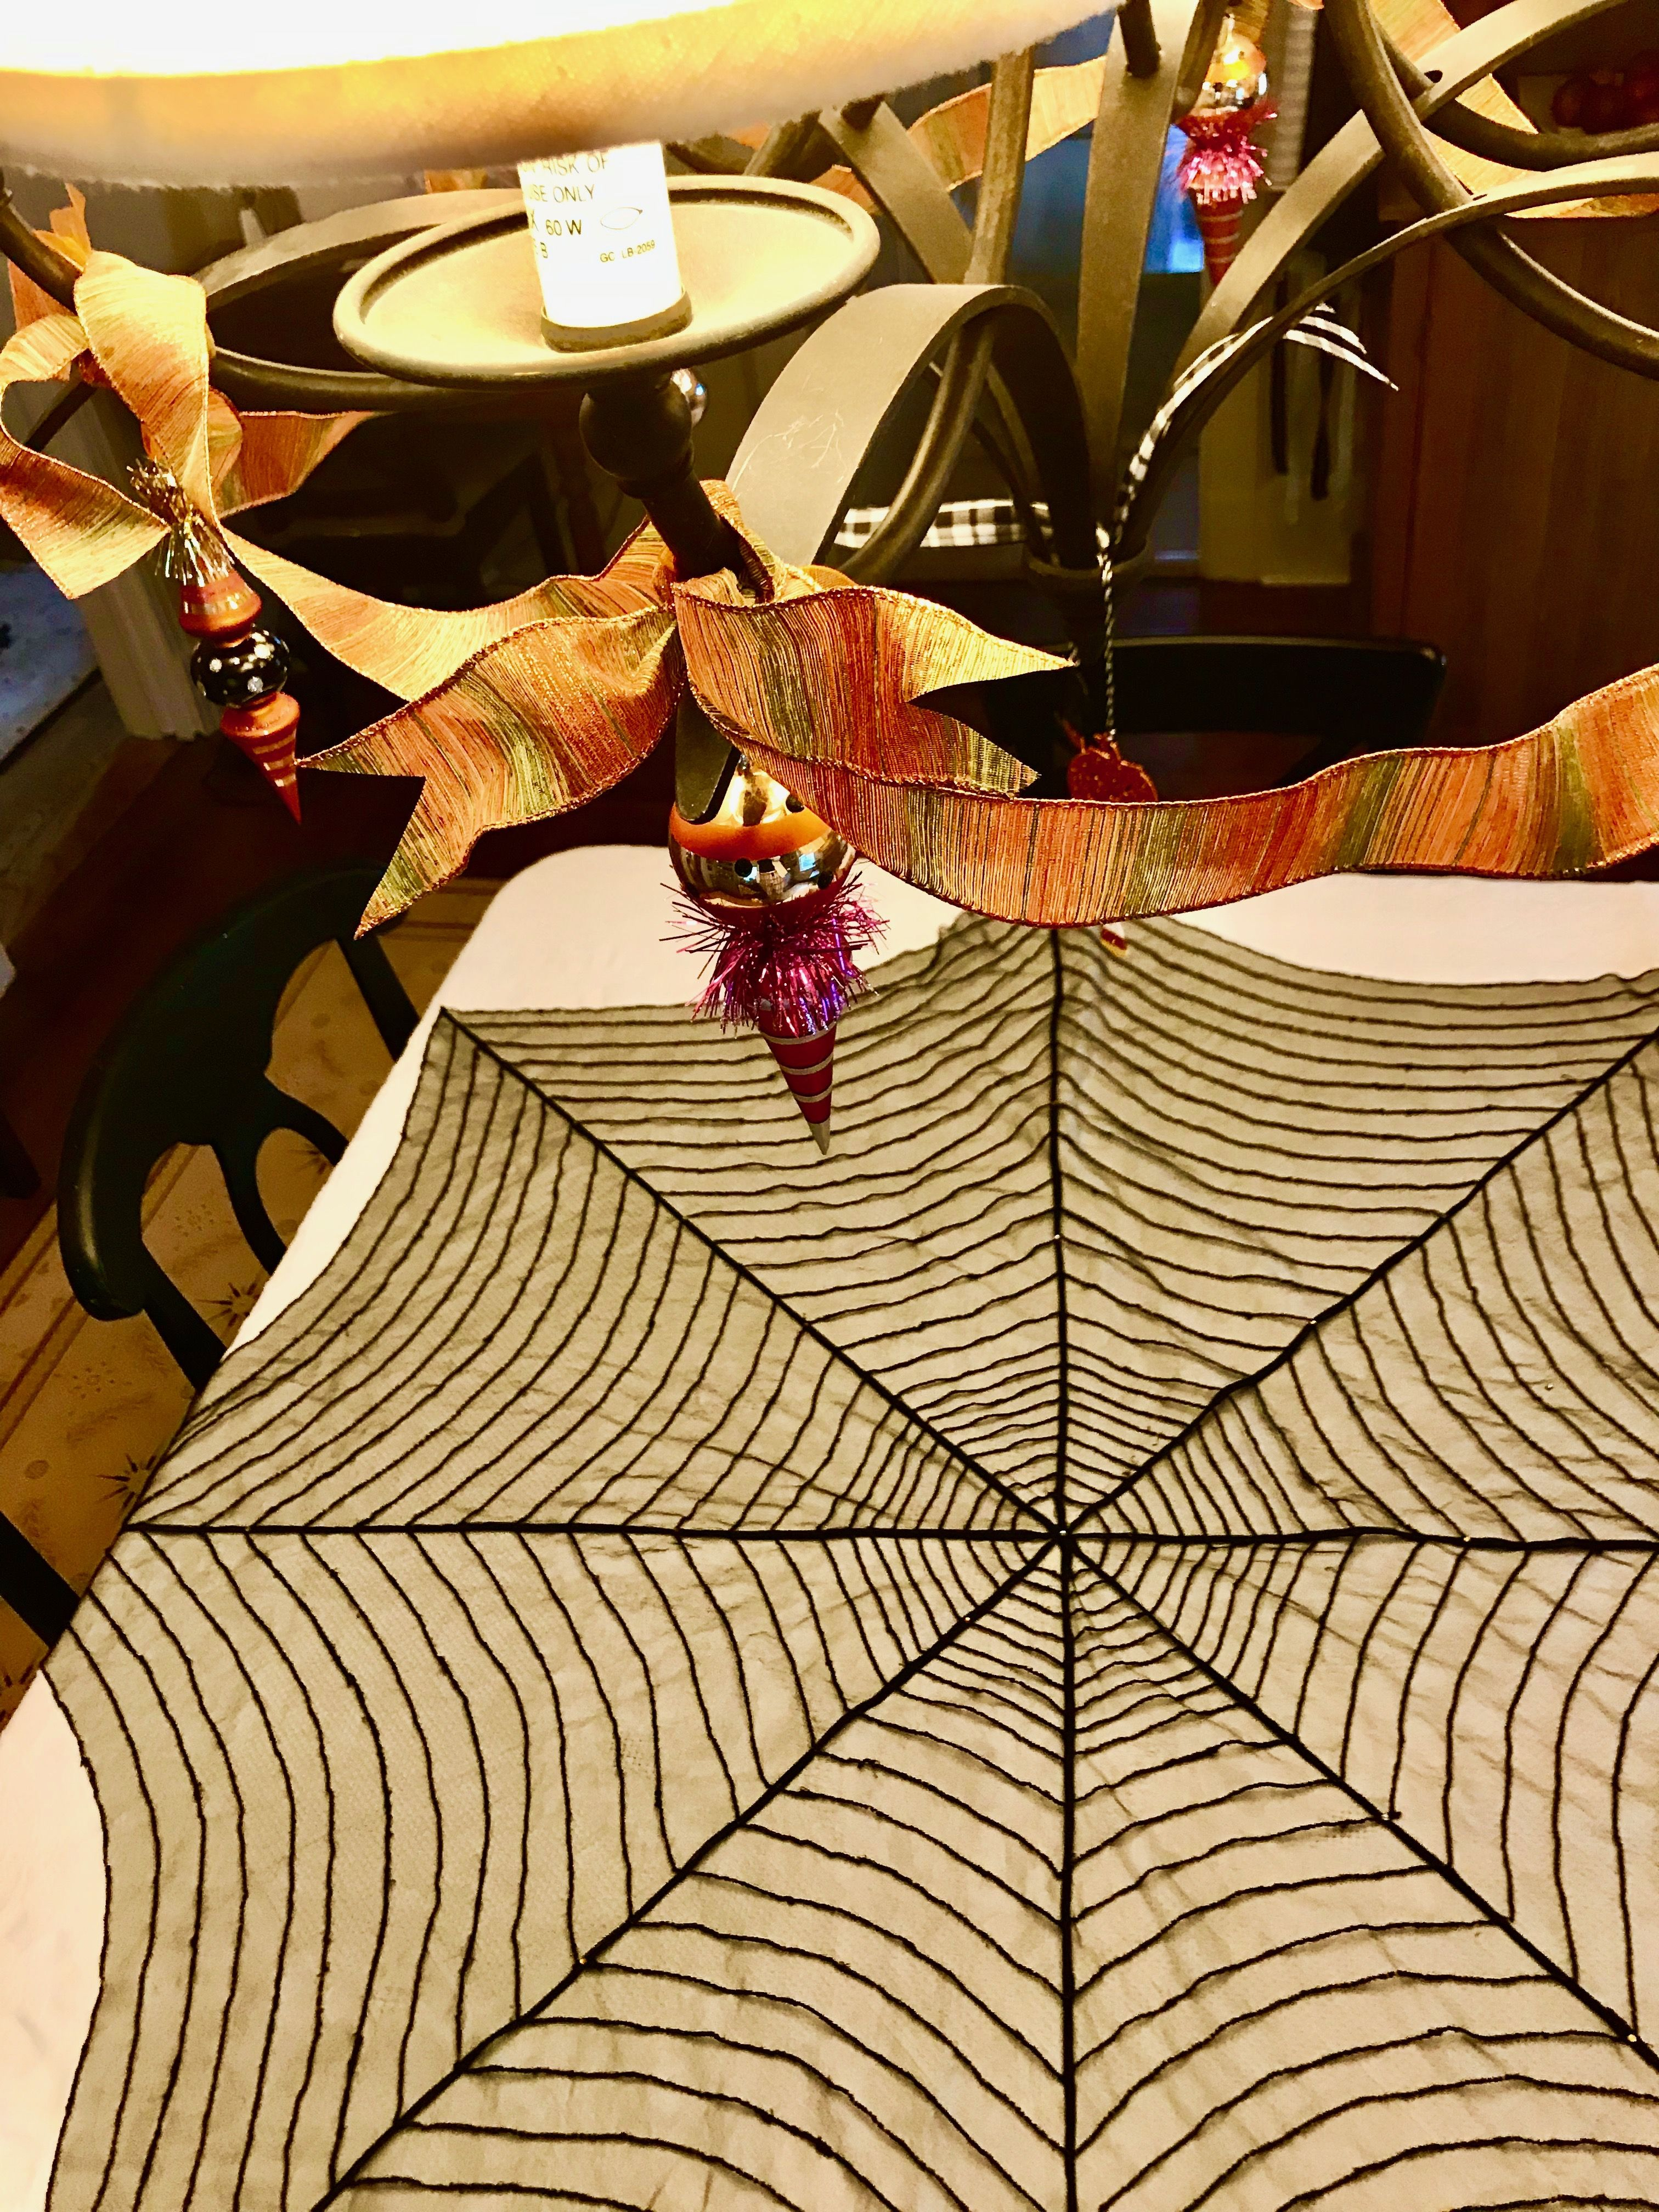 Pin by Heather Behrmann on trunk or treat/ halloween